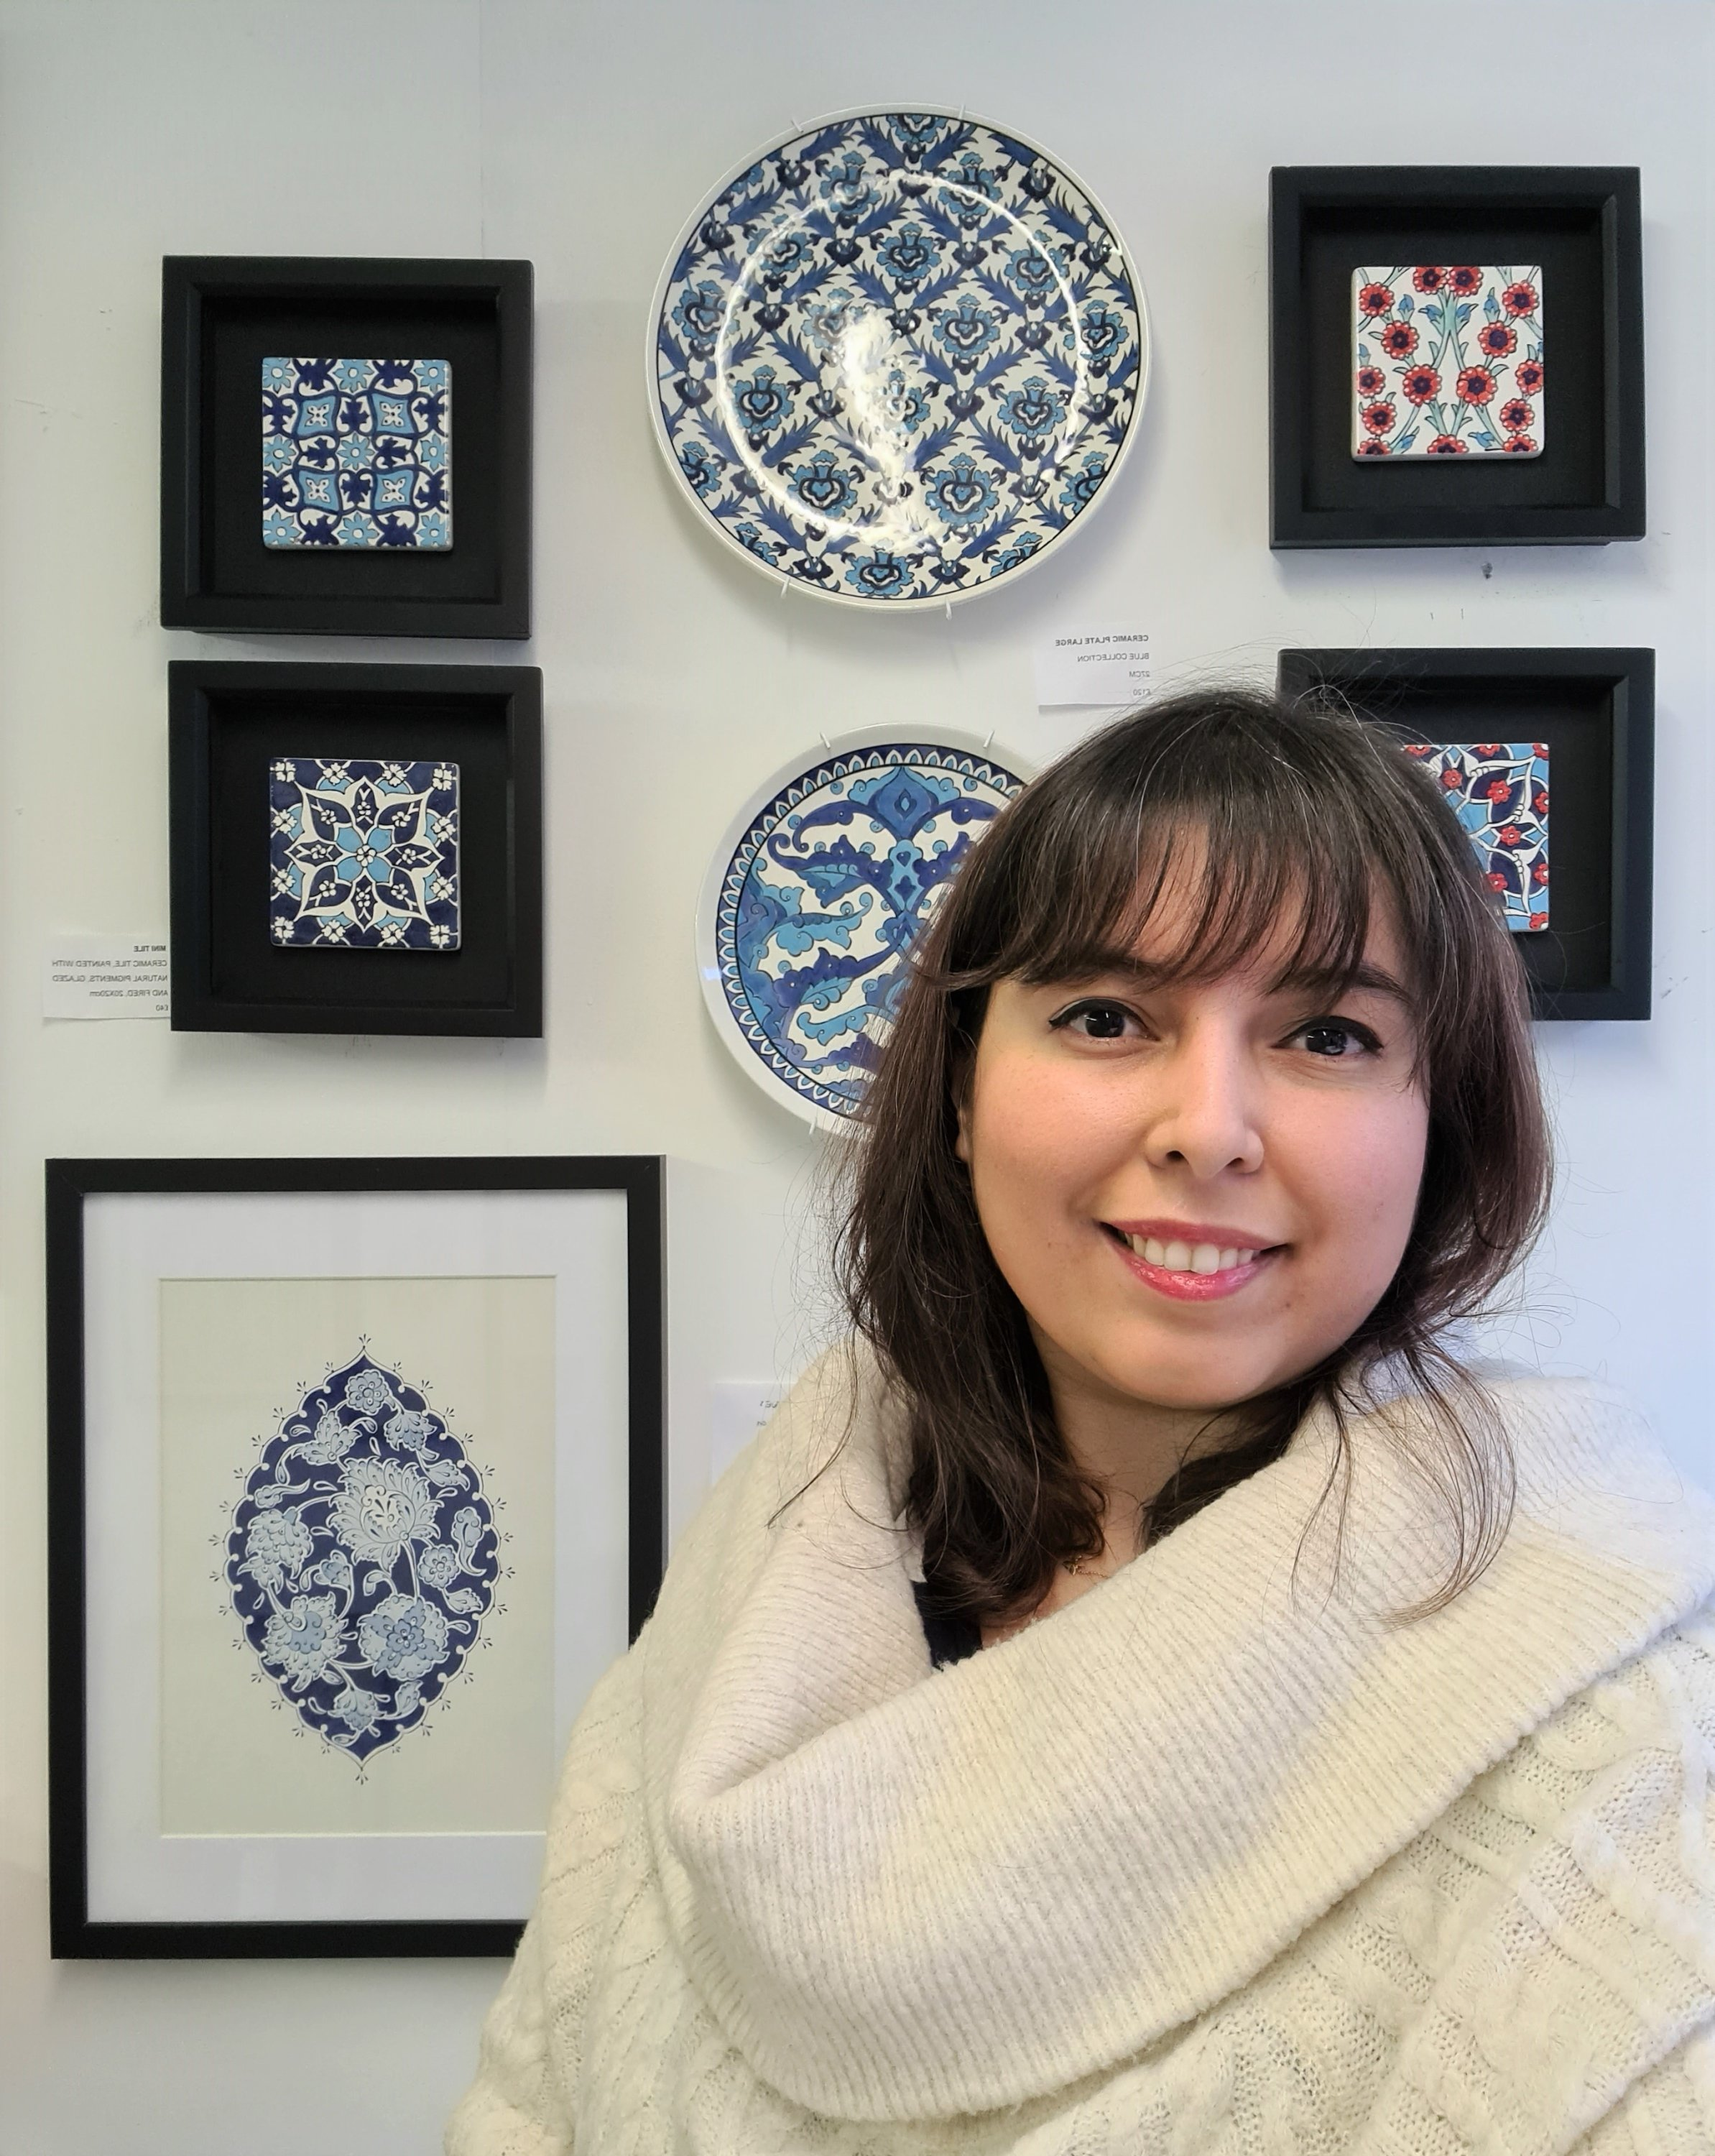 """Nagihan Seymour poses in front of some works from """"The Four Elements.' (Courtesy of Nagihan Seymour)"""